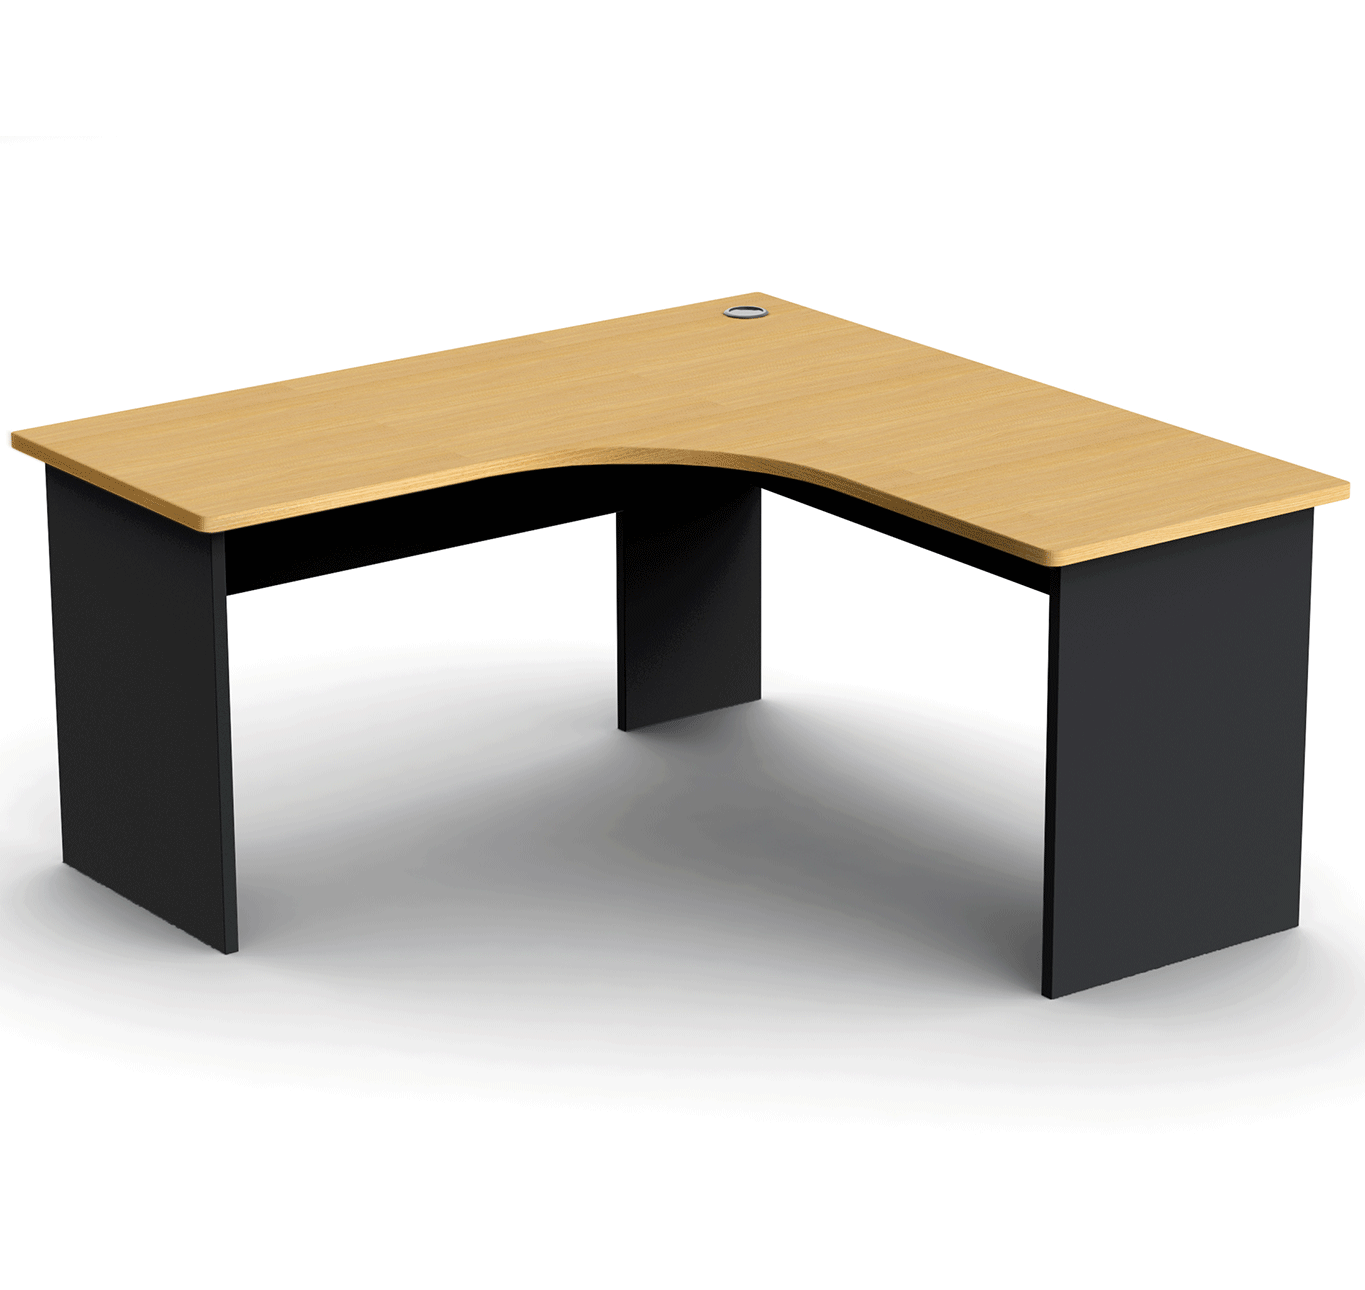 new product ce0ca 863e5 Flatpack-furniture-proceed-corner-desk #83784 - PNG Images ...